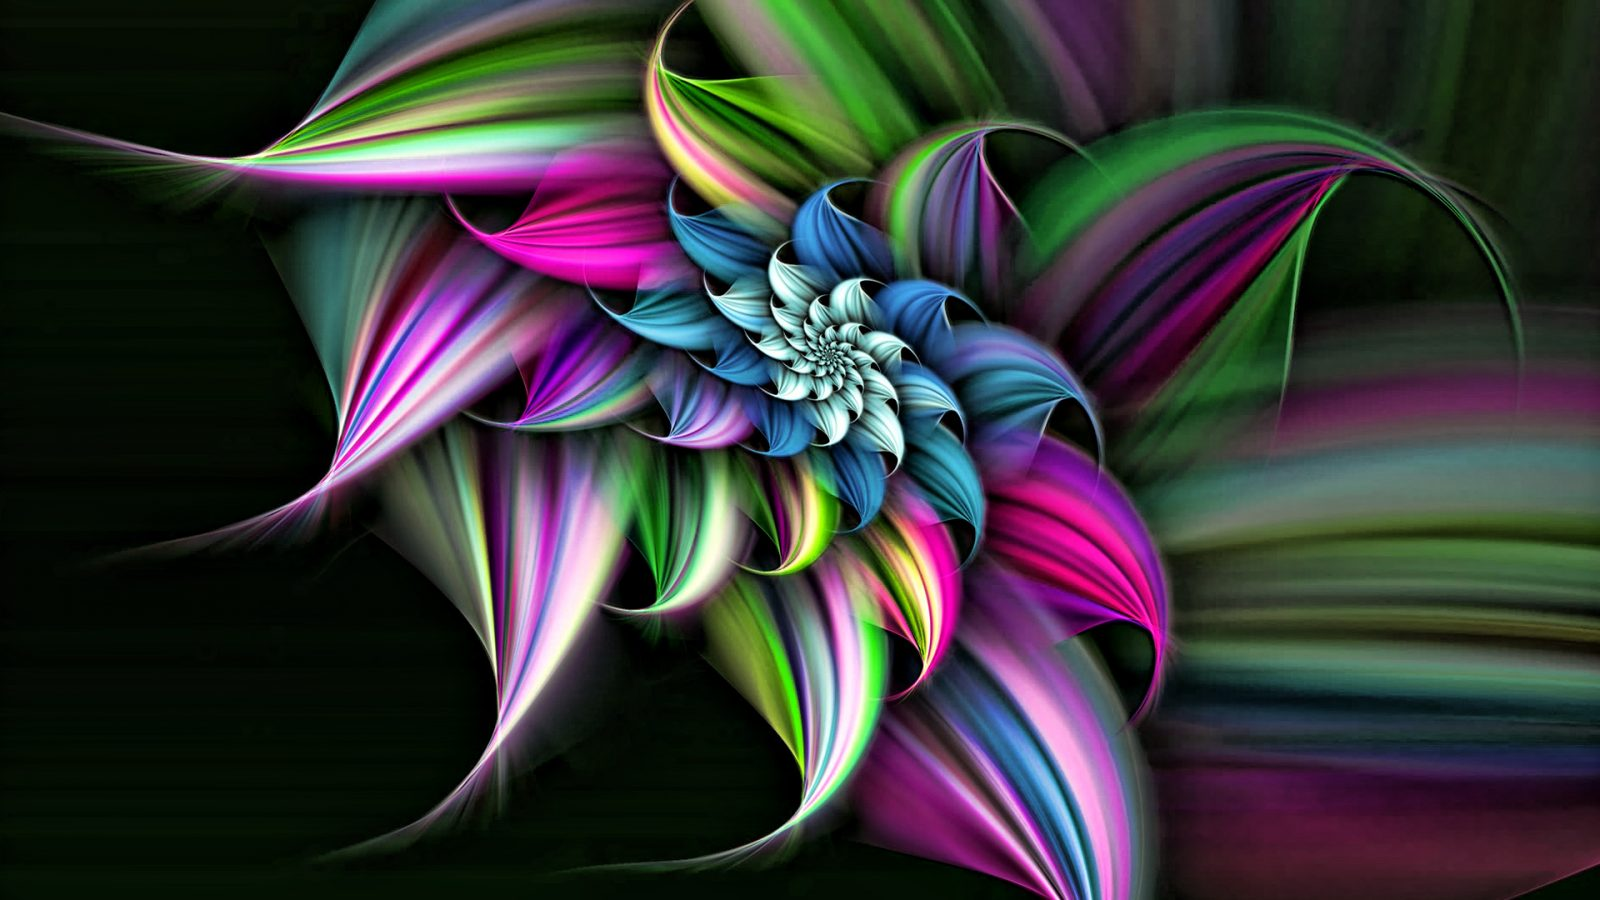 Flor 3d im genes y fotos - 3g wallpaper hd ...